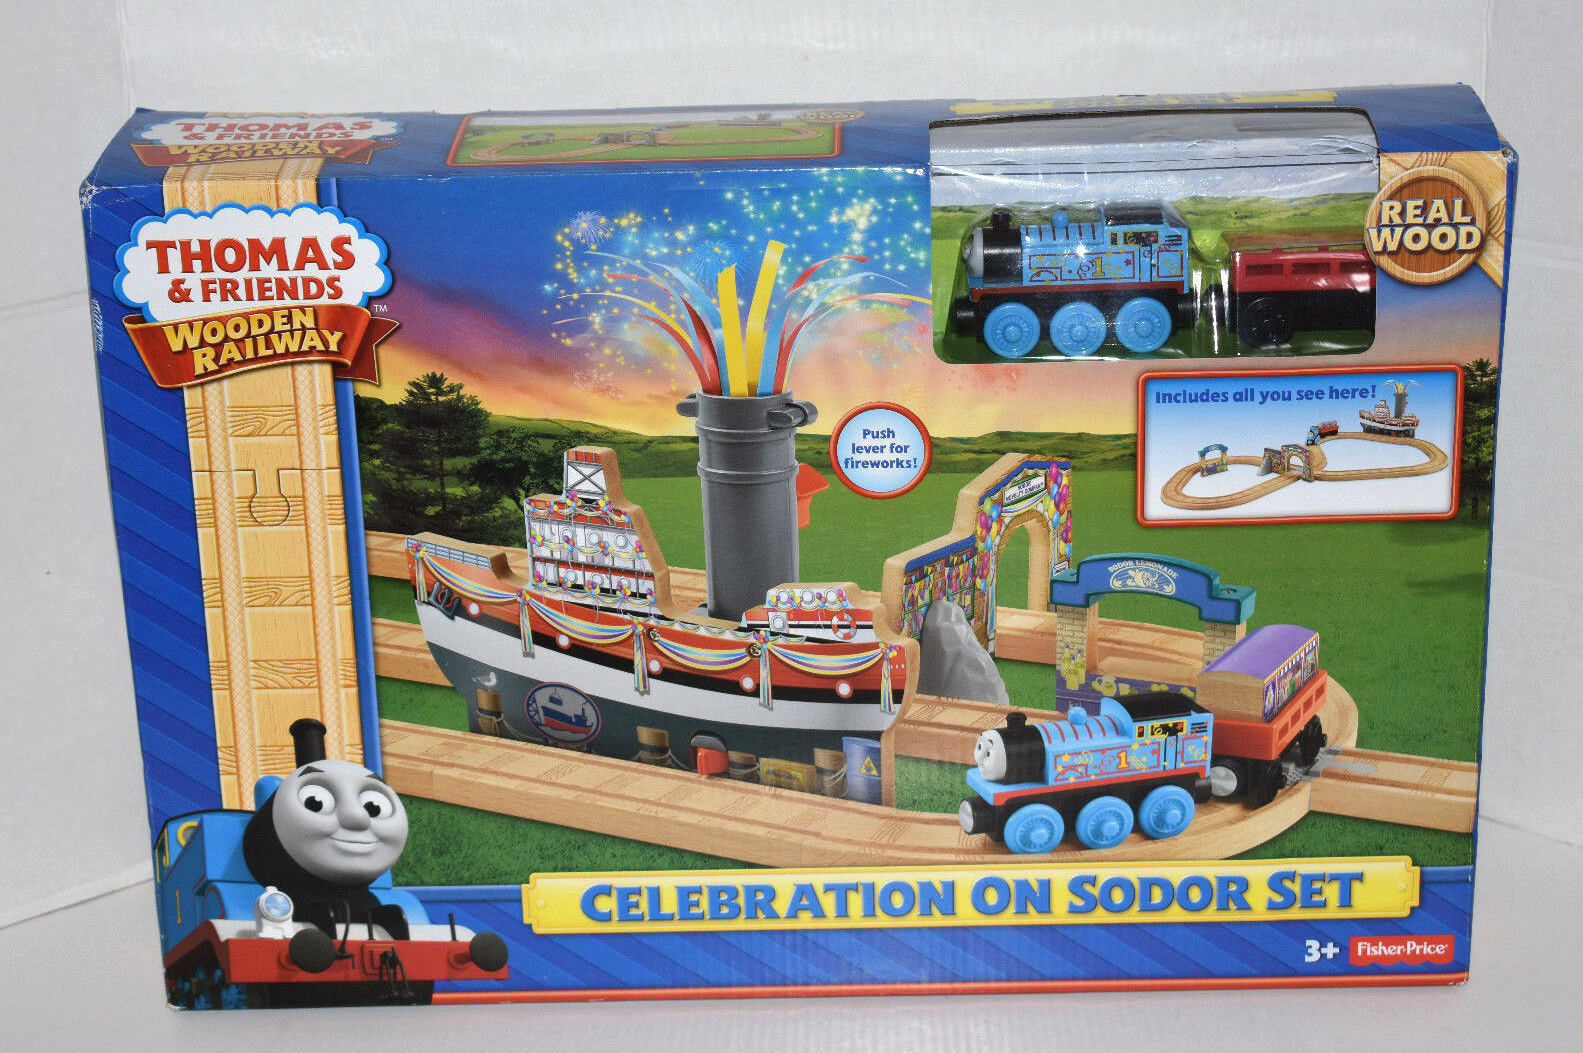 Fisher Price Thomas & Friends Wooden Railway Celebration on Sodor Train Set-NEW